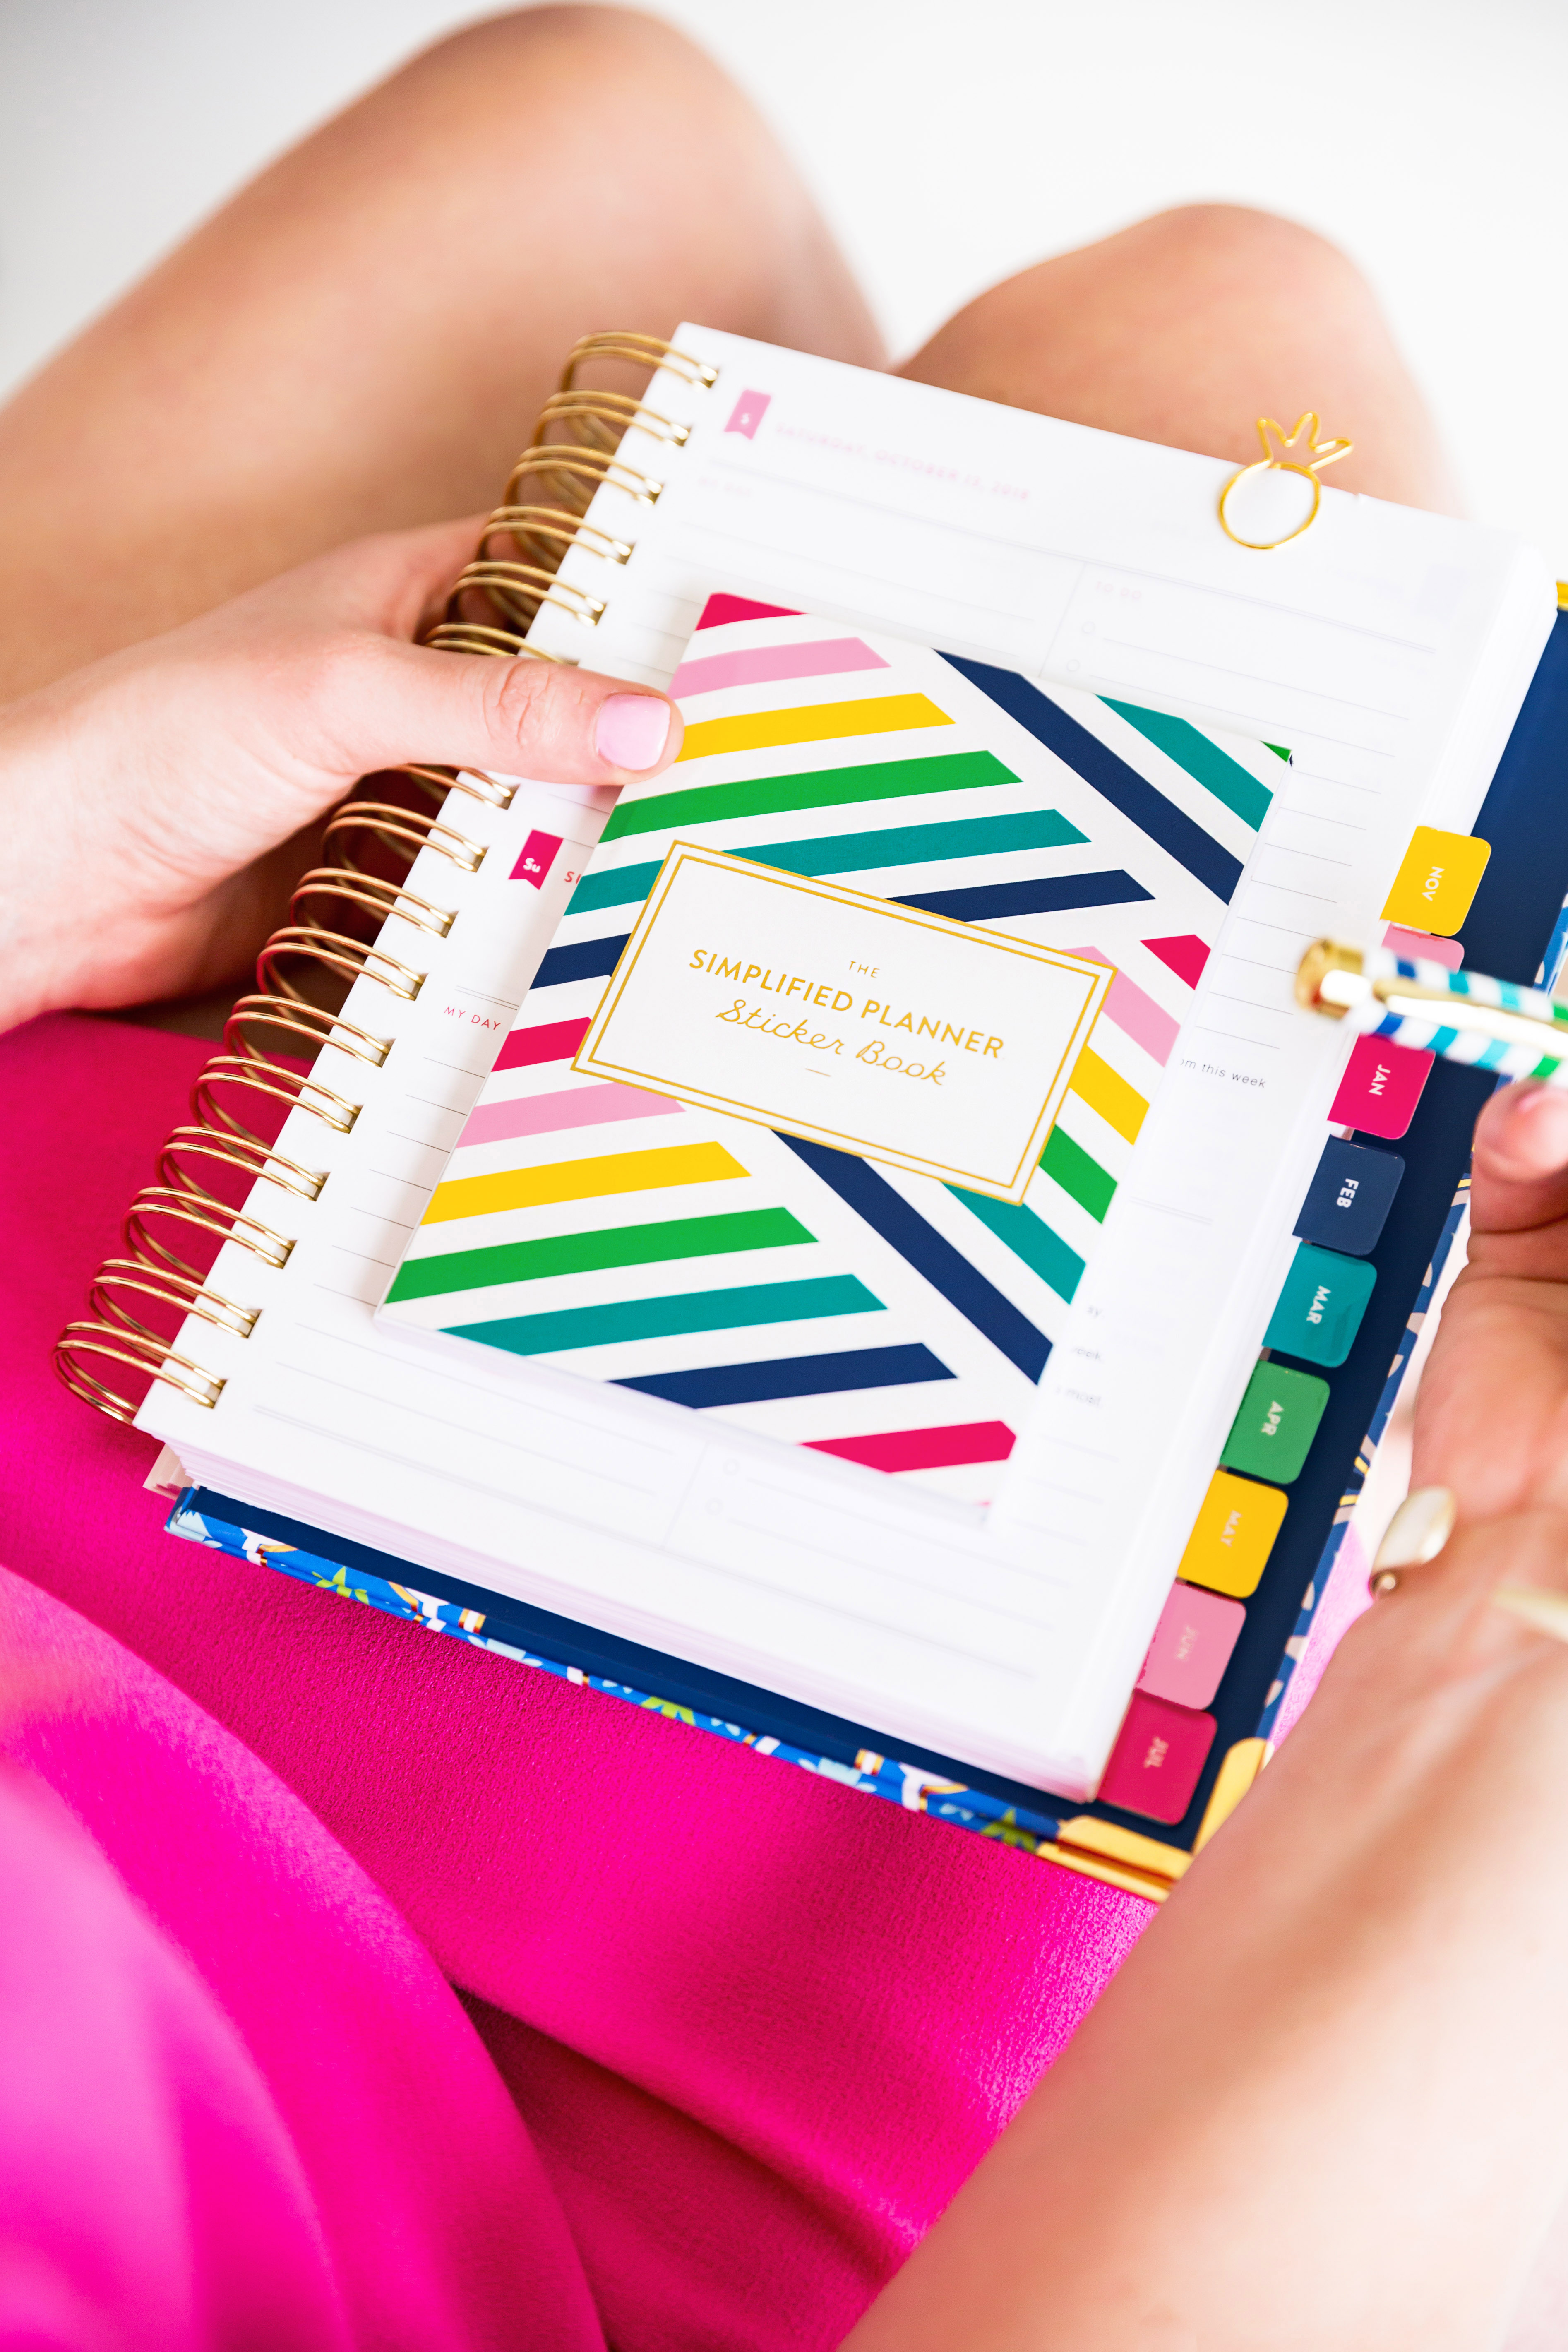 picture regarding Emily Ley Coupon Code called Simplified Planner 2018-2019 Planner Overview How I System